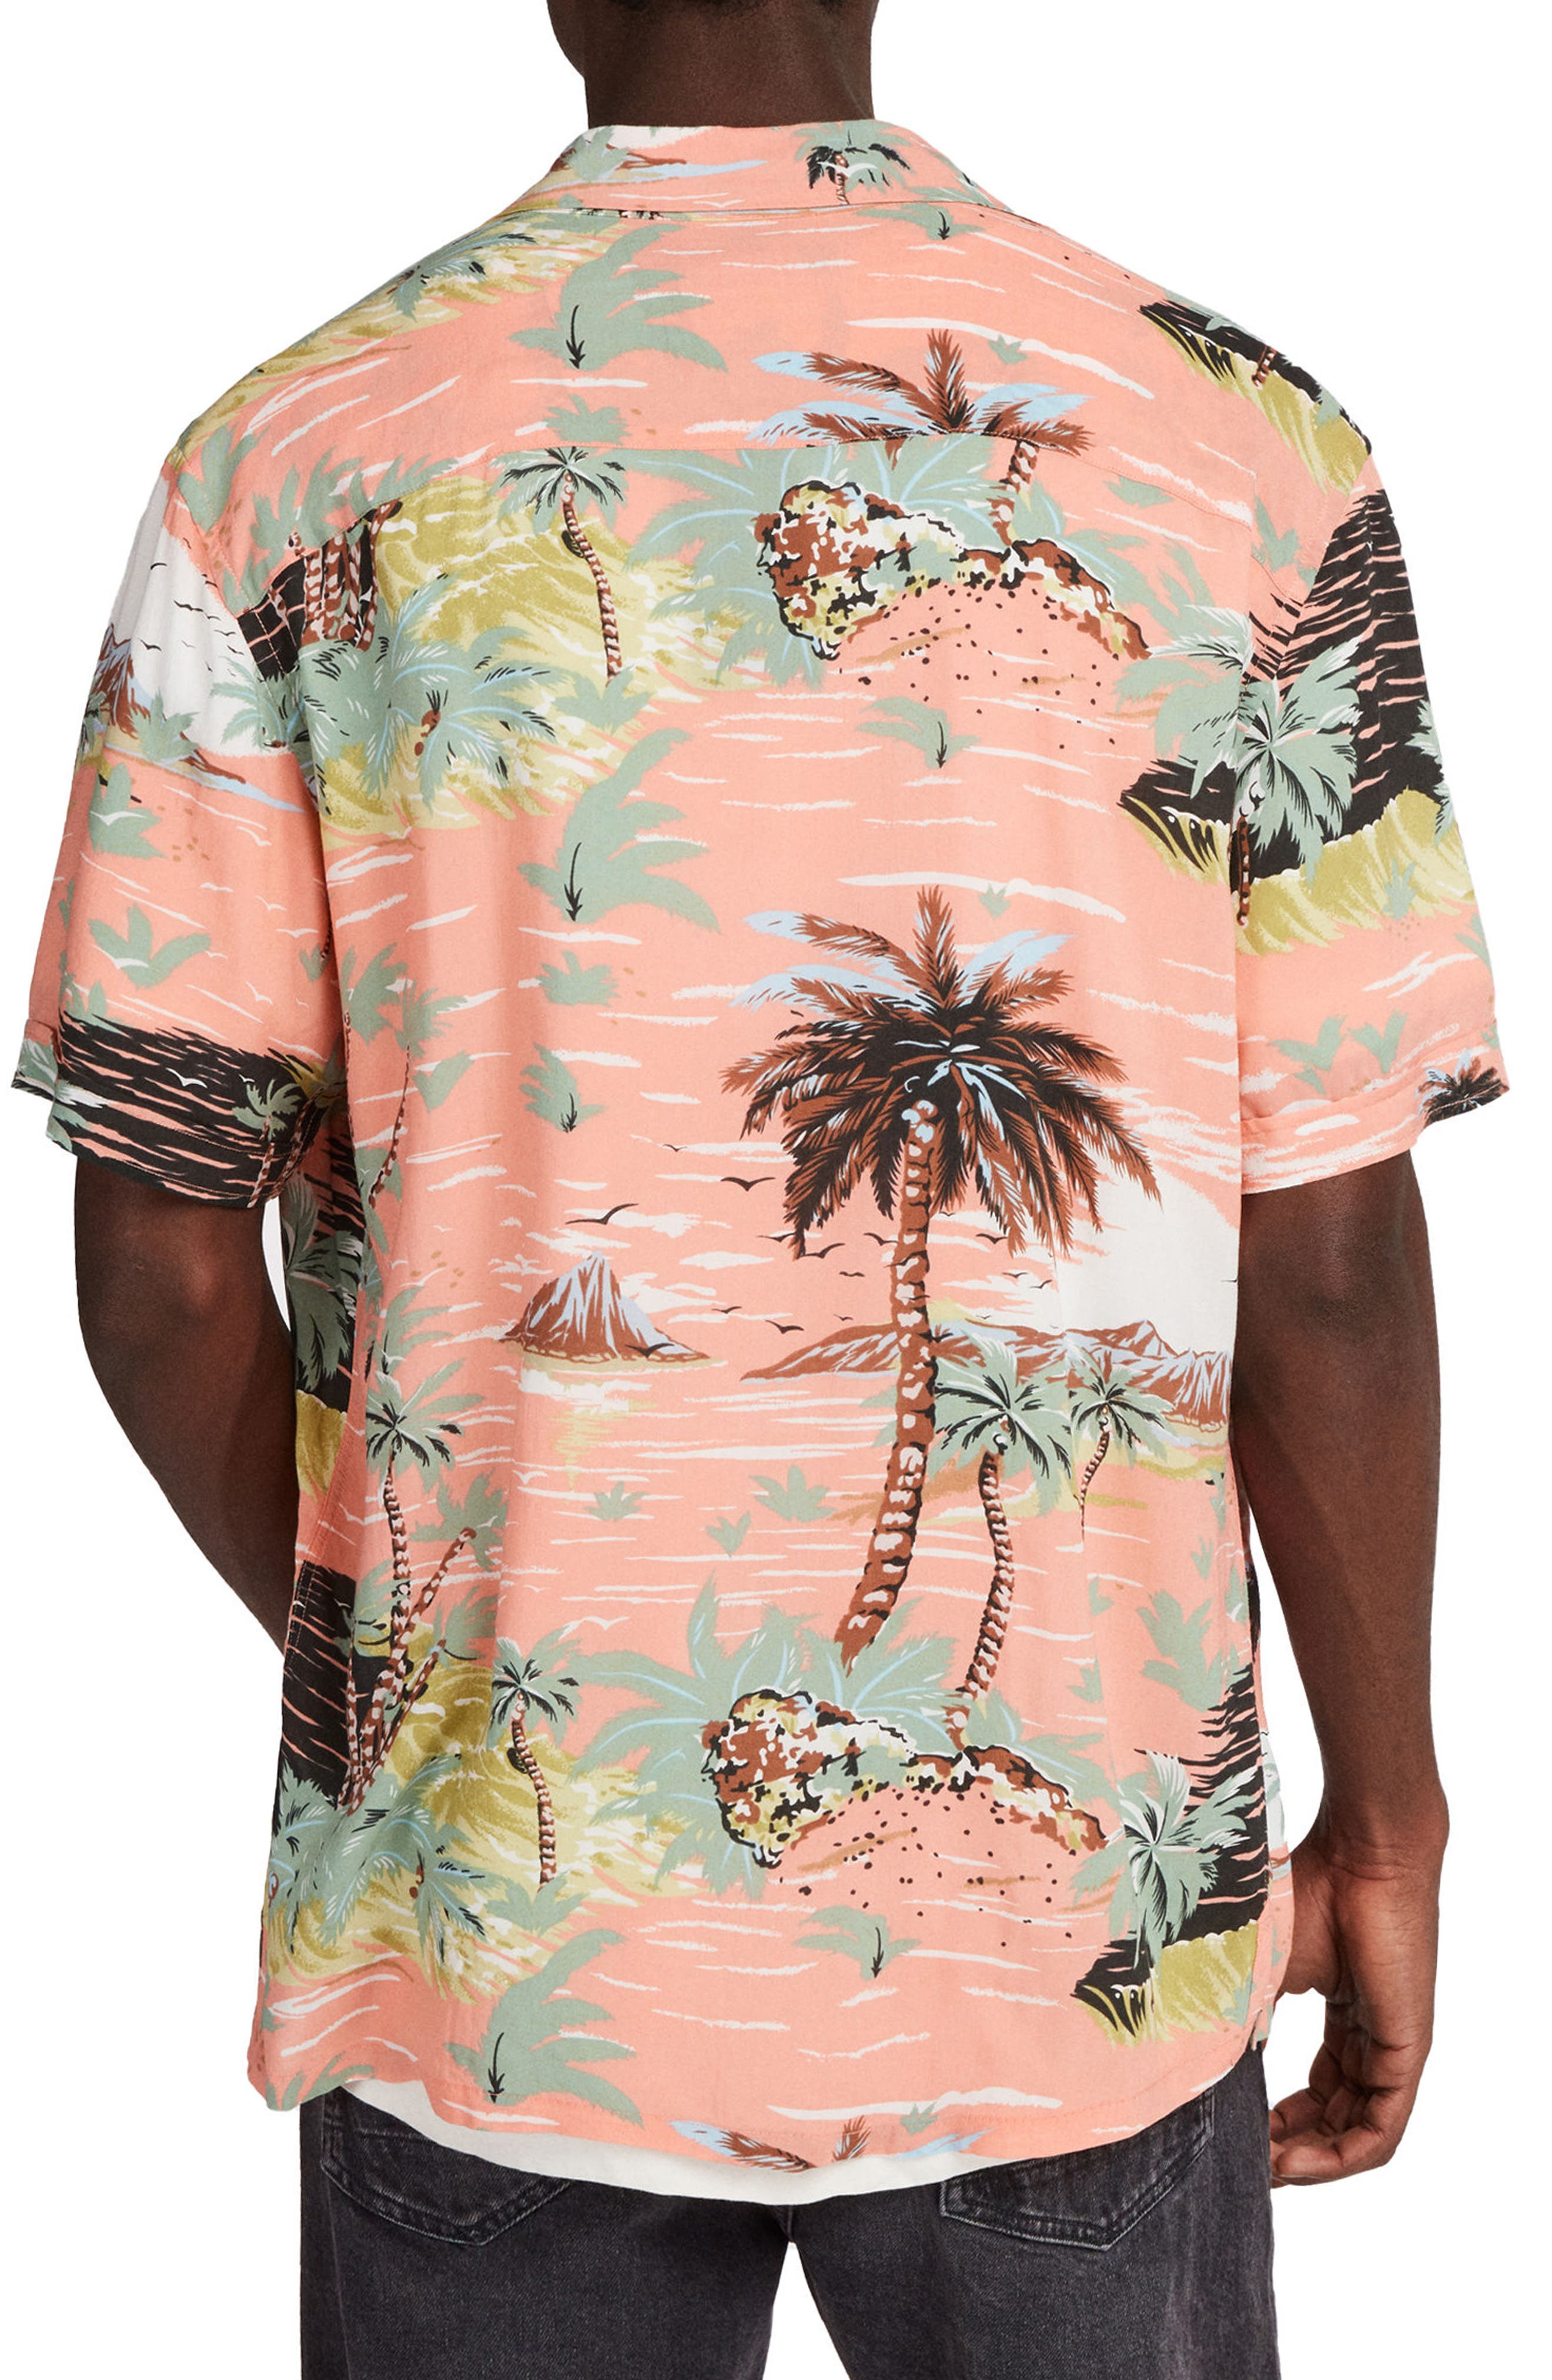 Luau Camp Shirt,                             Alternate thumbnail 2, color,                             PINK